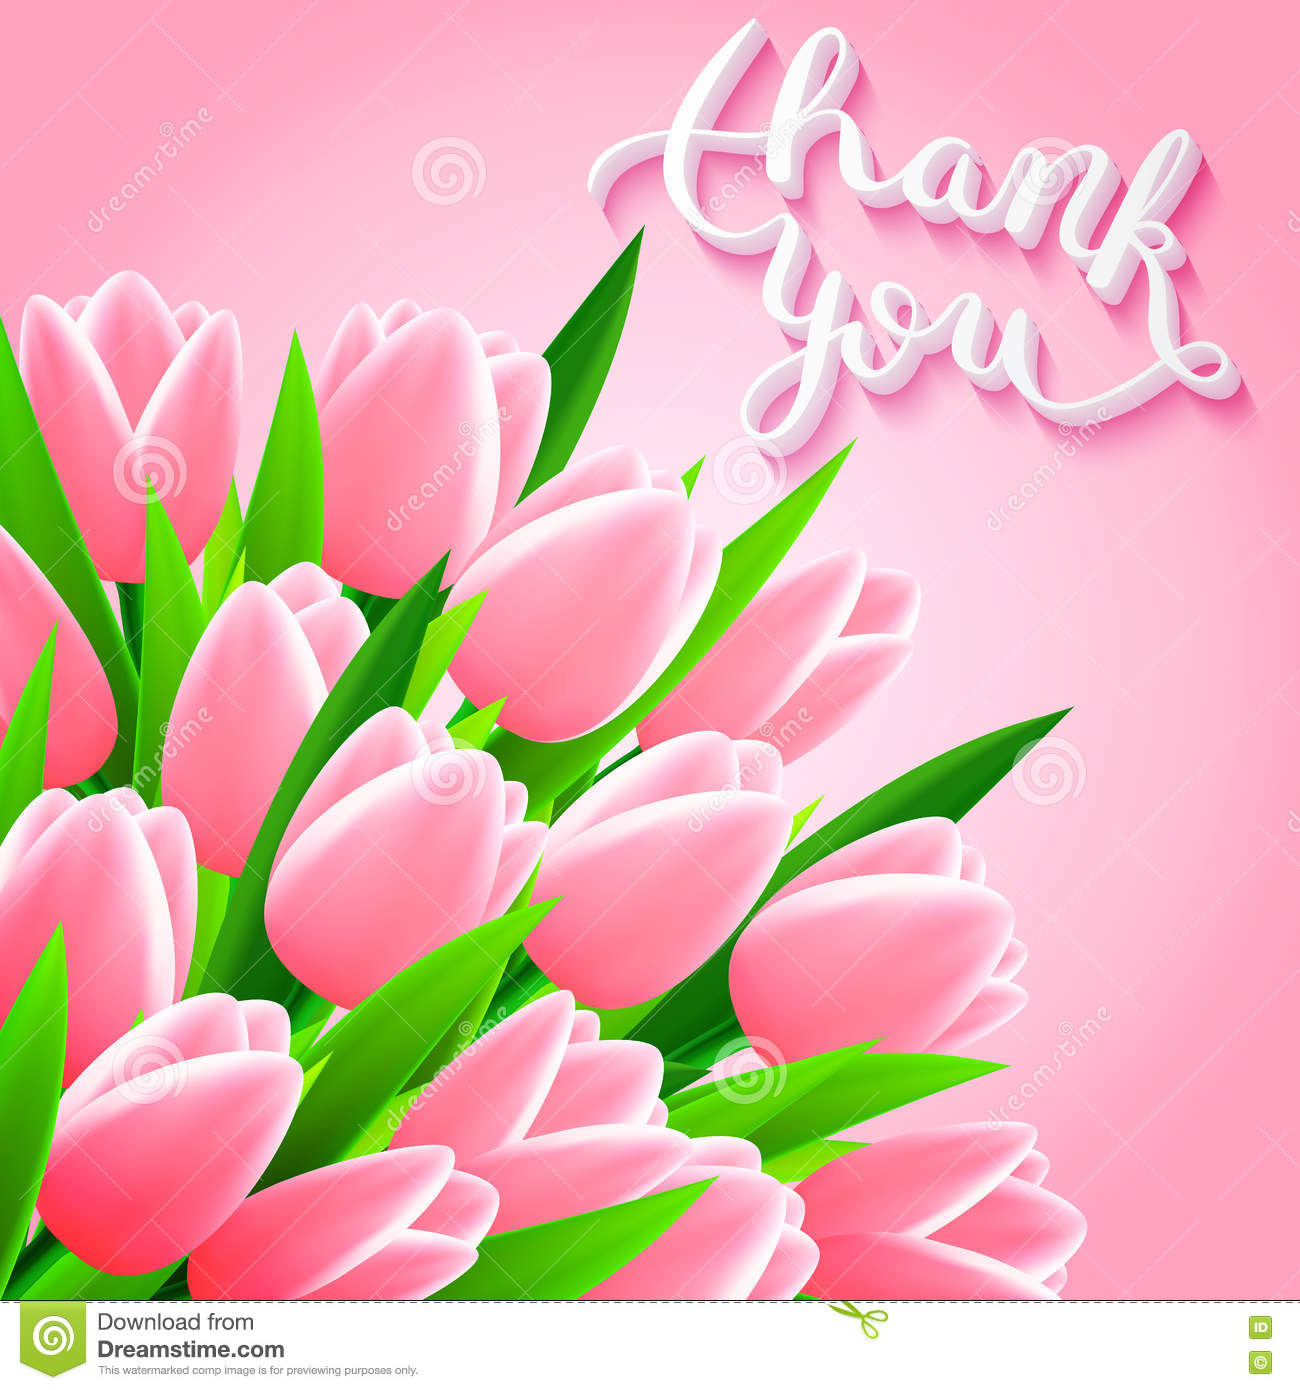 Beautiful Flower Thank You: Thank You With Tulip Flowers Stock Illustration